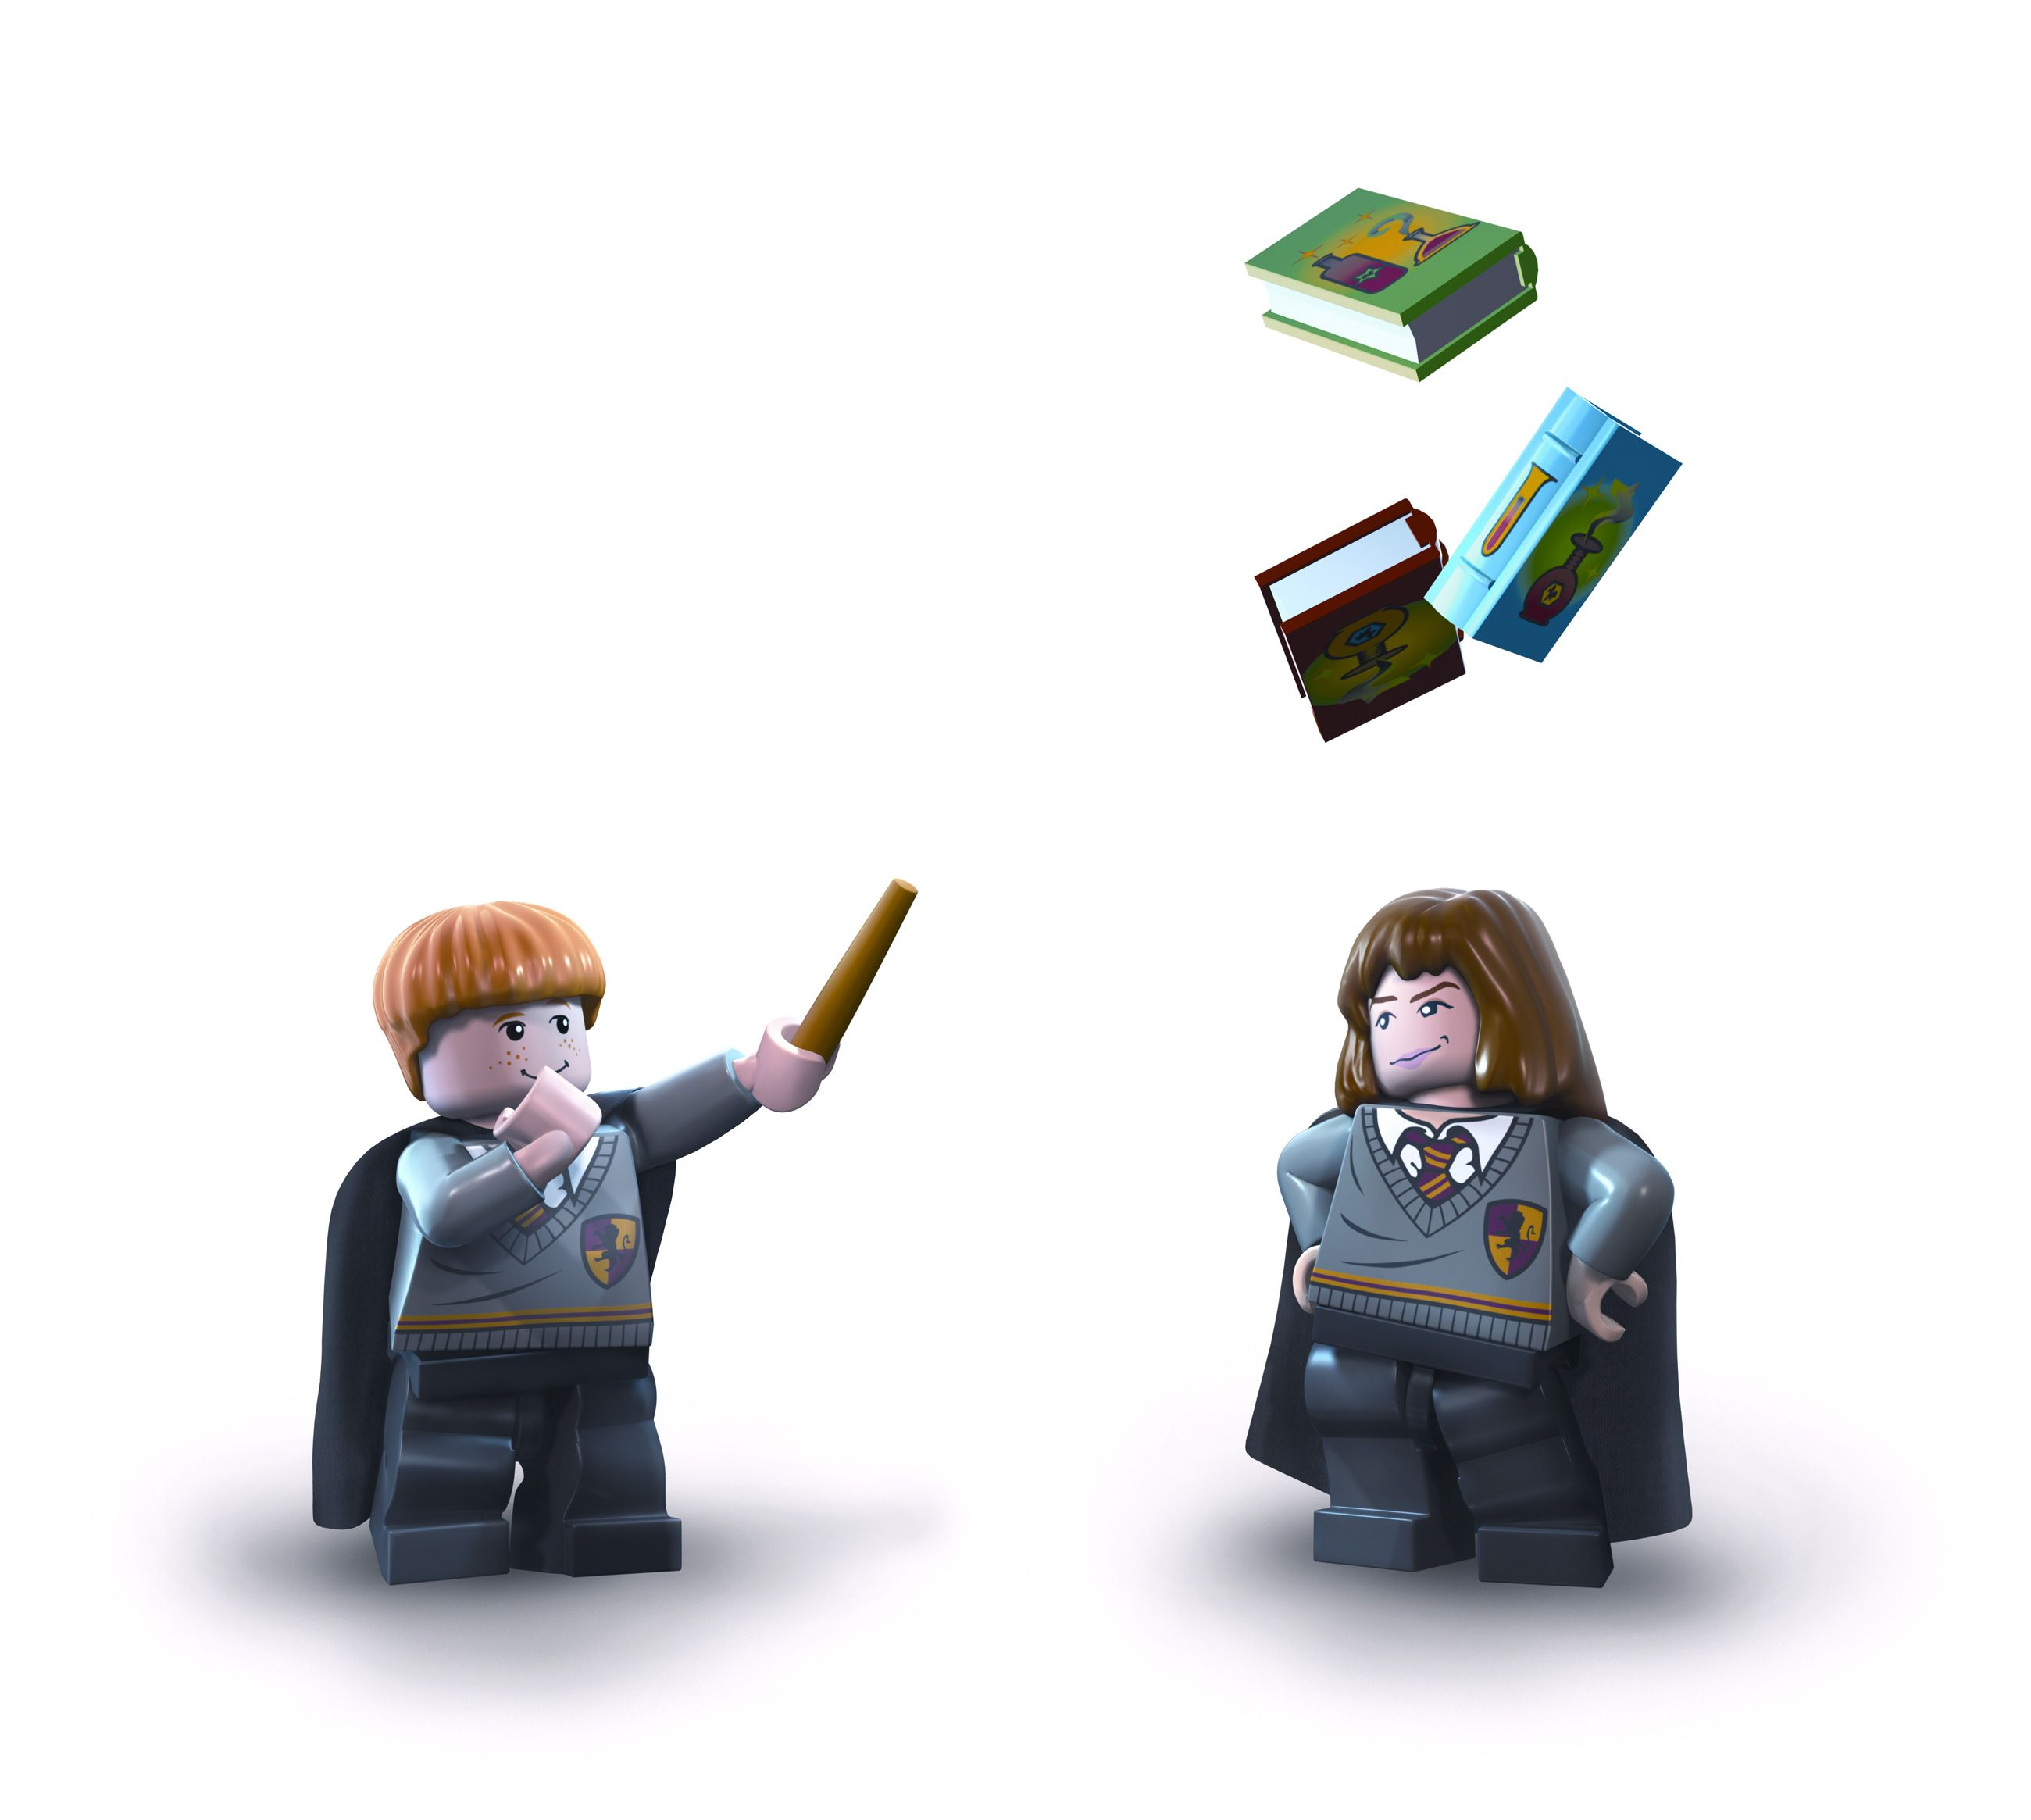 lego harry potter - the only video game that i can actually play.  nevermind that it's meant for 6 year olds...